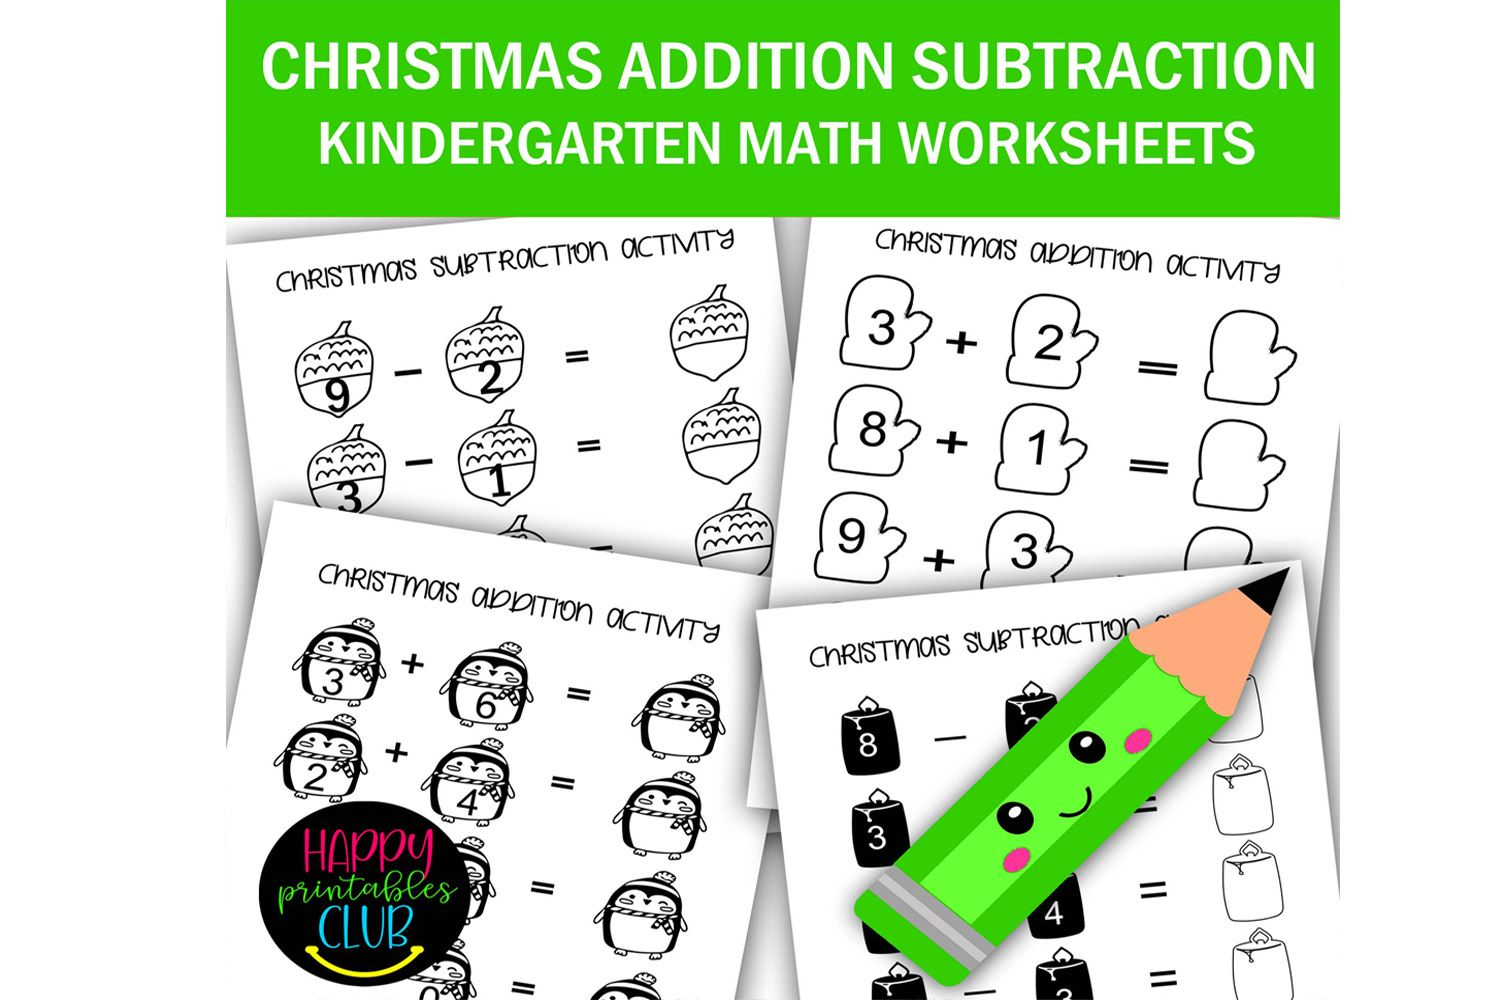 Christmas Addition Subtraction Worksheet Graphic By Happy Printables Club Creative Fabrica Addition And Subtraction Christmas Addition Christmas Math Activities Addition and subtraction with pictures